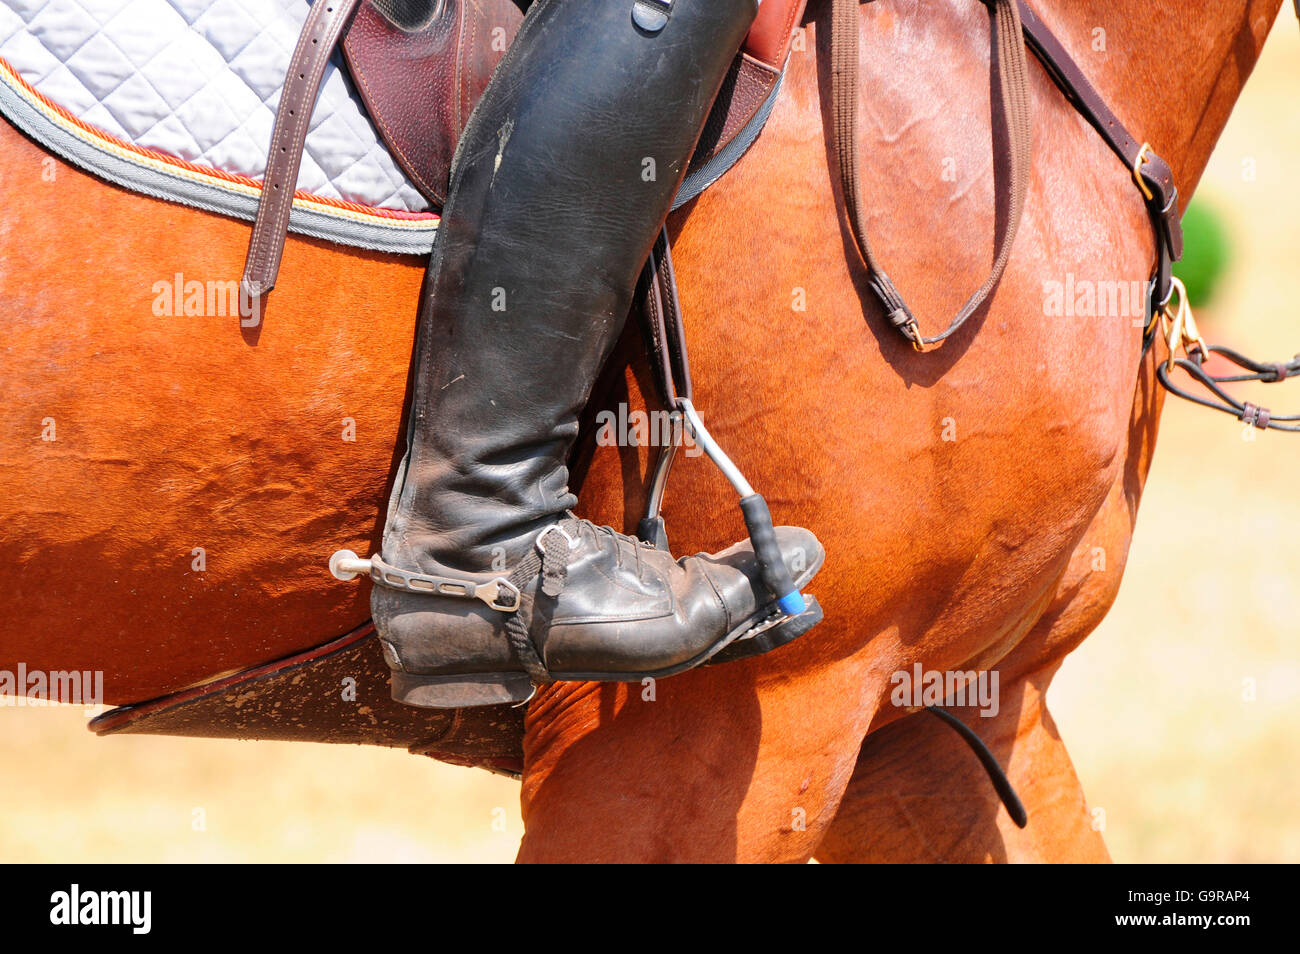 Equestrian Sports, riding boots, spurs, gear, tack - Stock Image